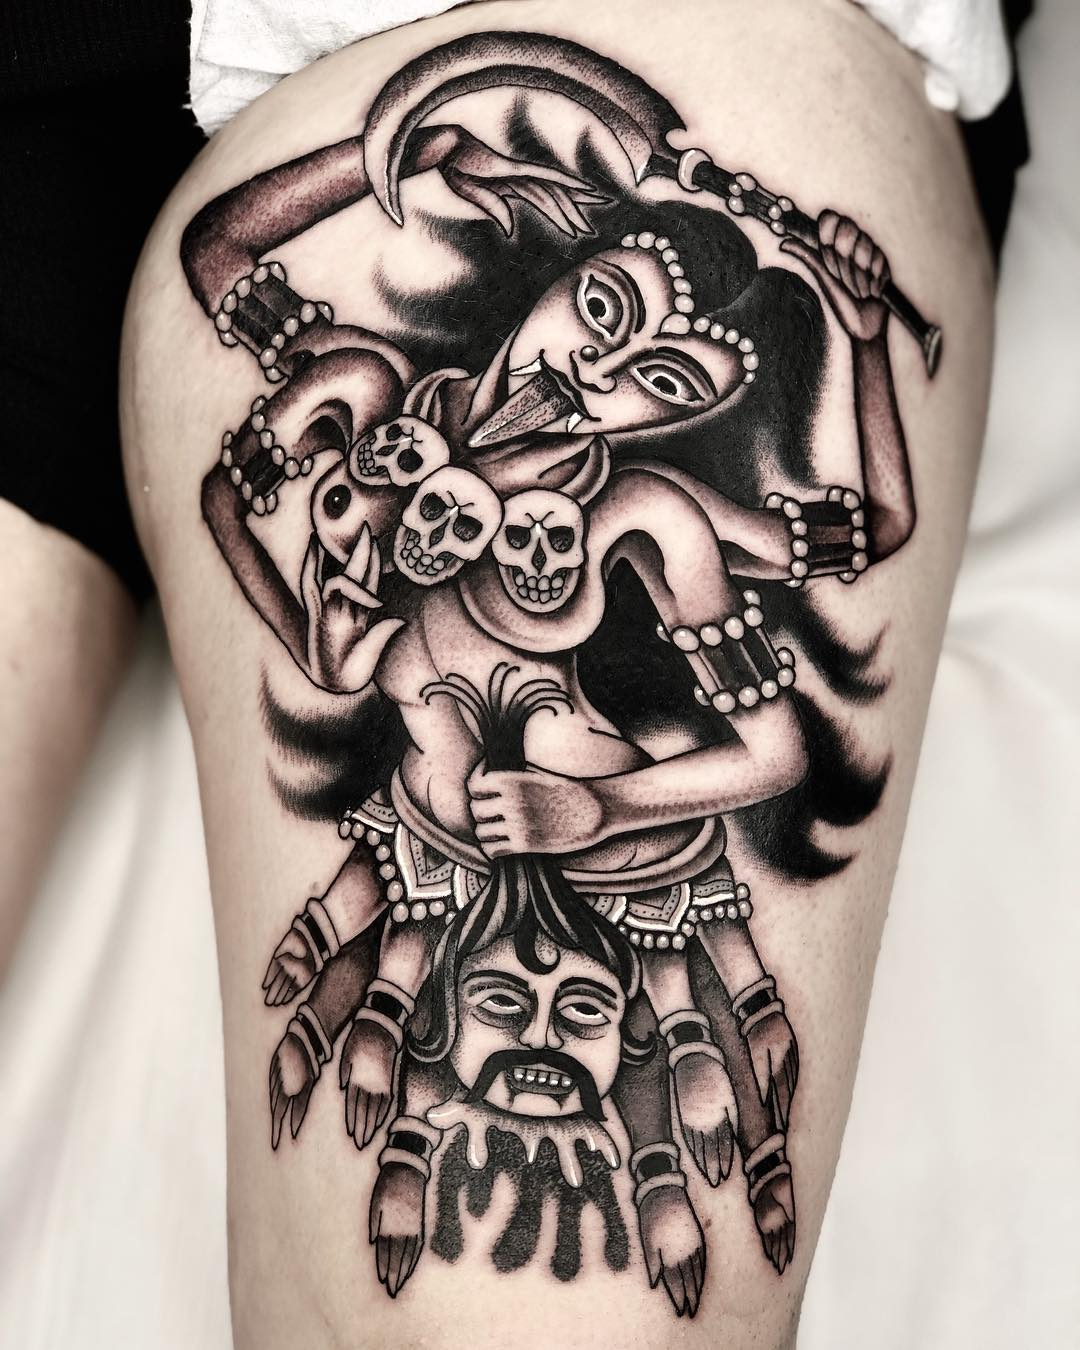 michelich black and grey tattoo artist london 04